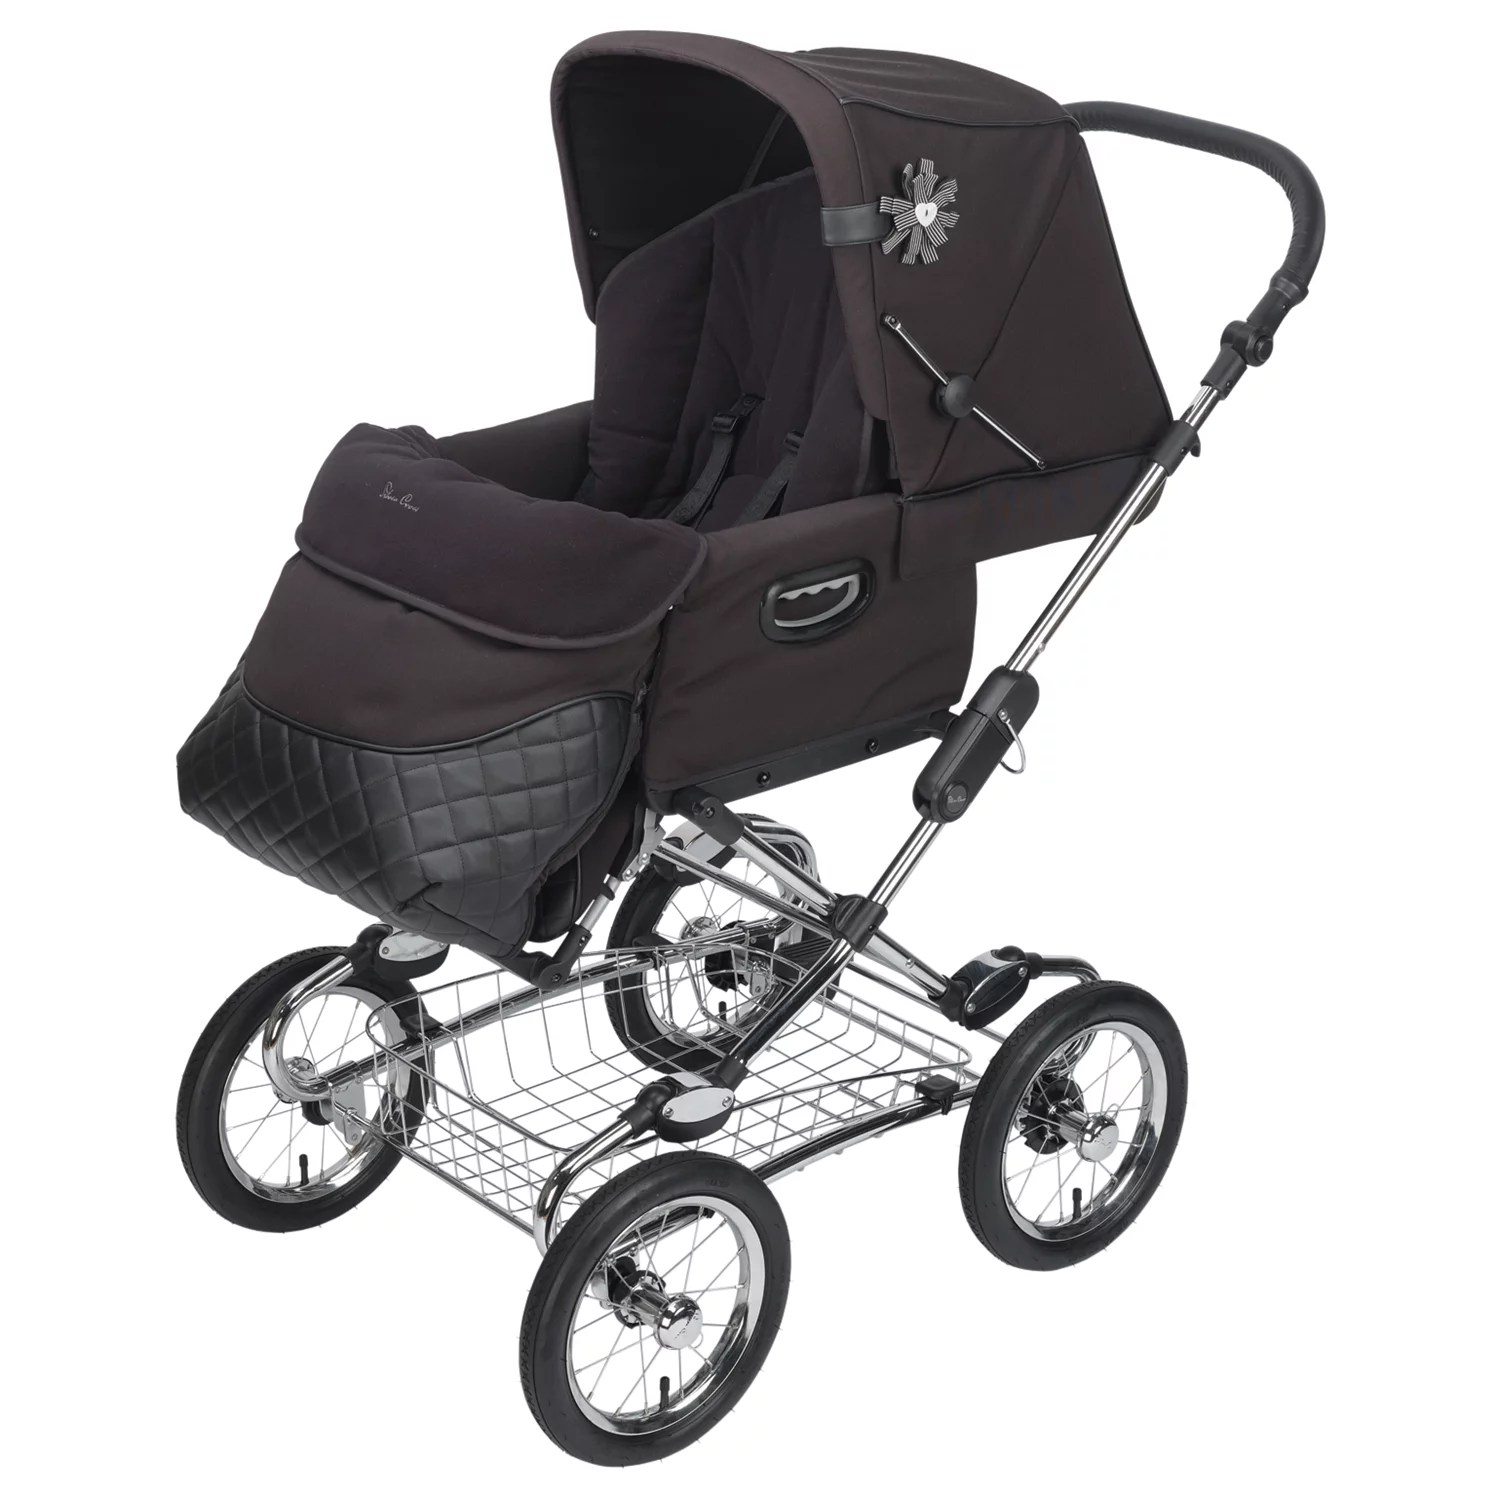 Silver Cross Elegance Buggy Board Silver Cross Sleepover Elegance Pram Body Black At John